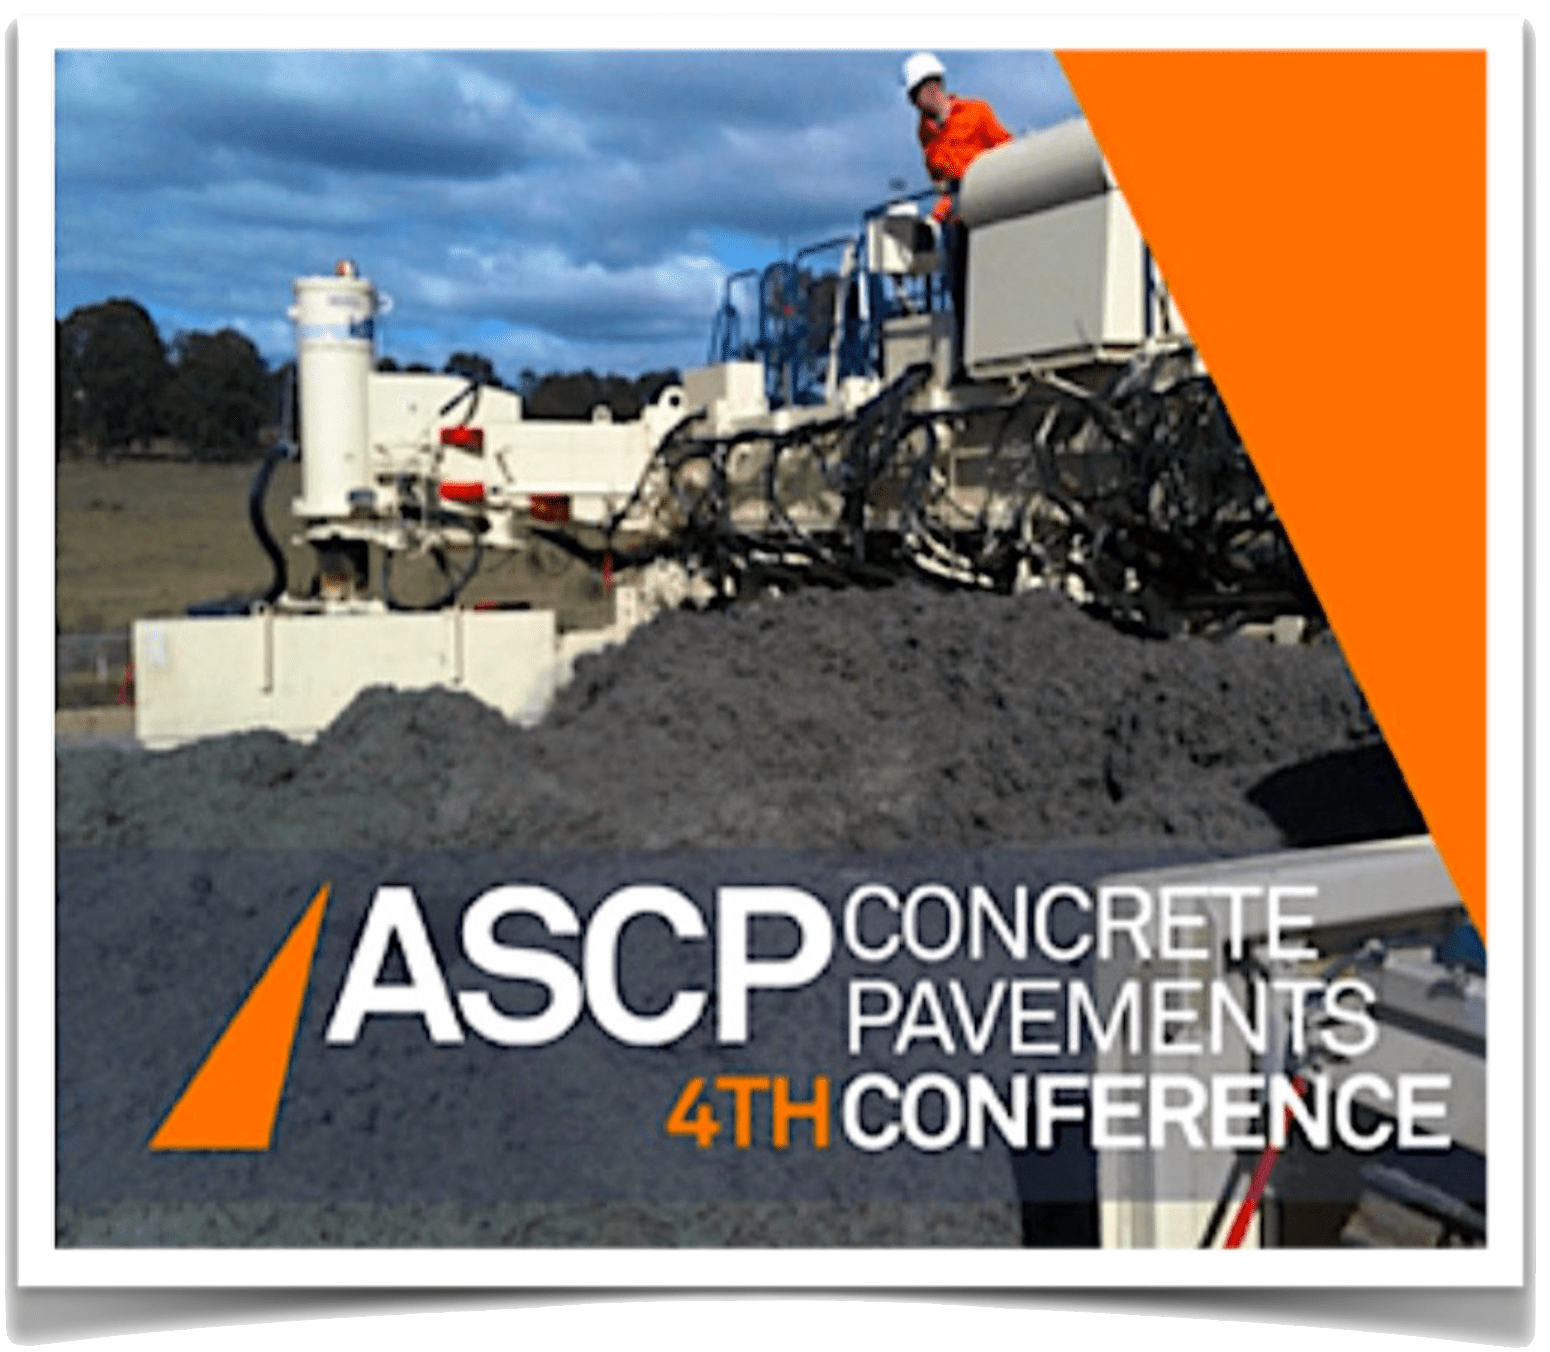 ASCP—Early Bird Registration Ends Friday, March 24th for the 4th Concrete Pavements Conference